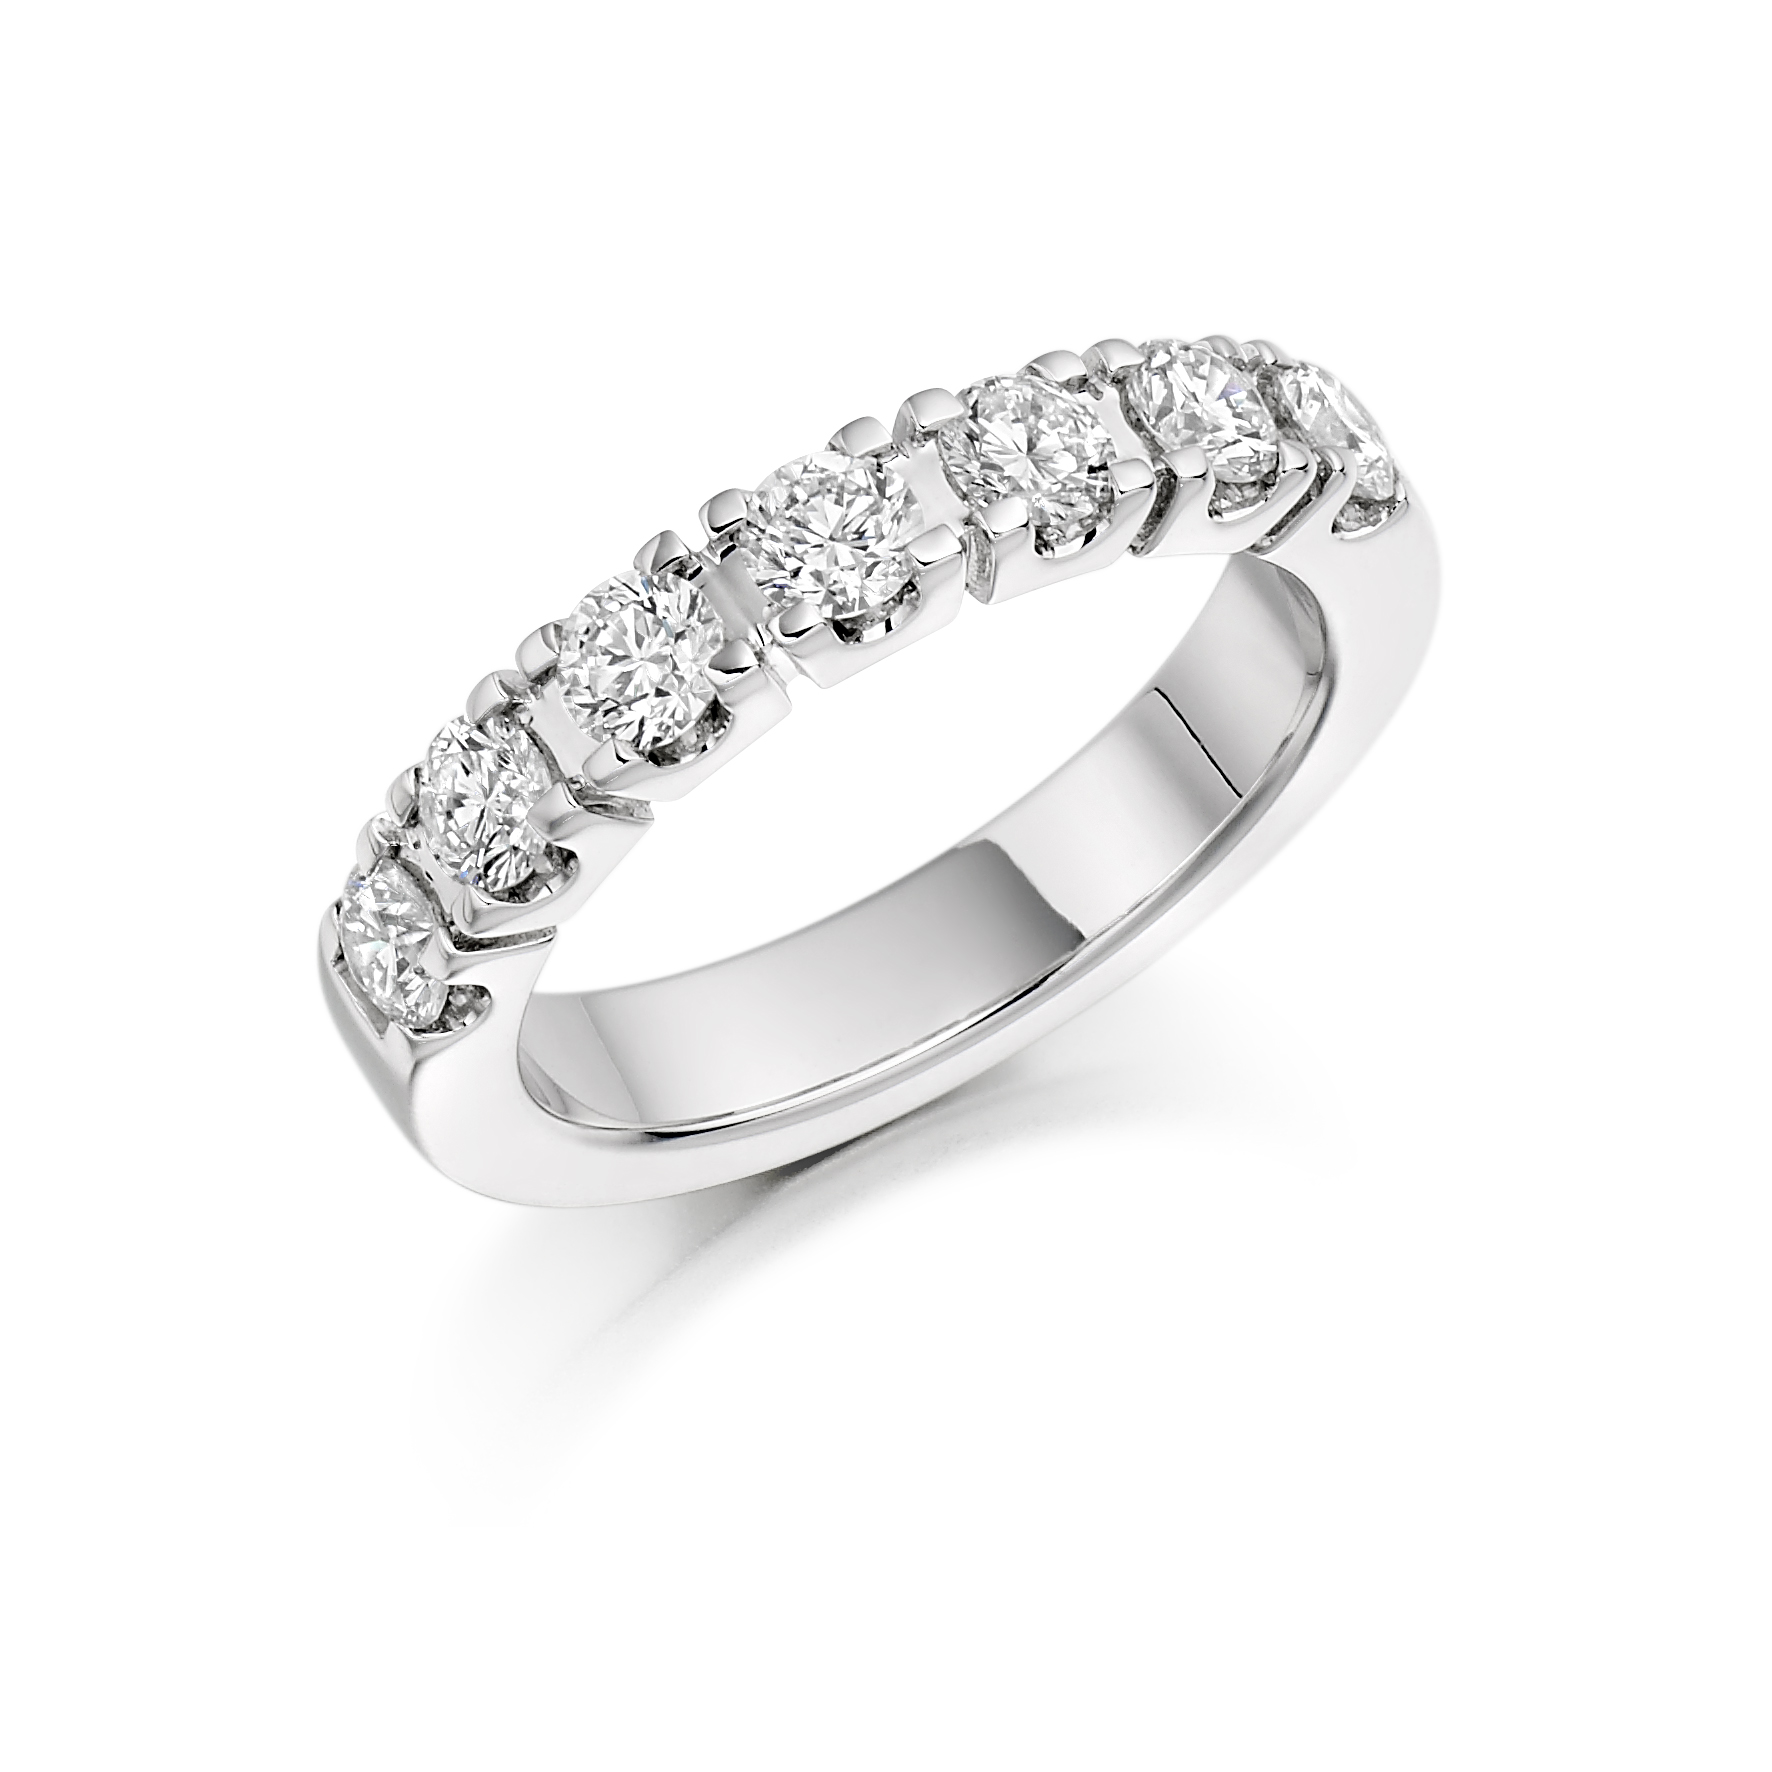 Castle Set Eternity ring